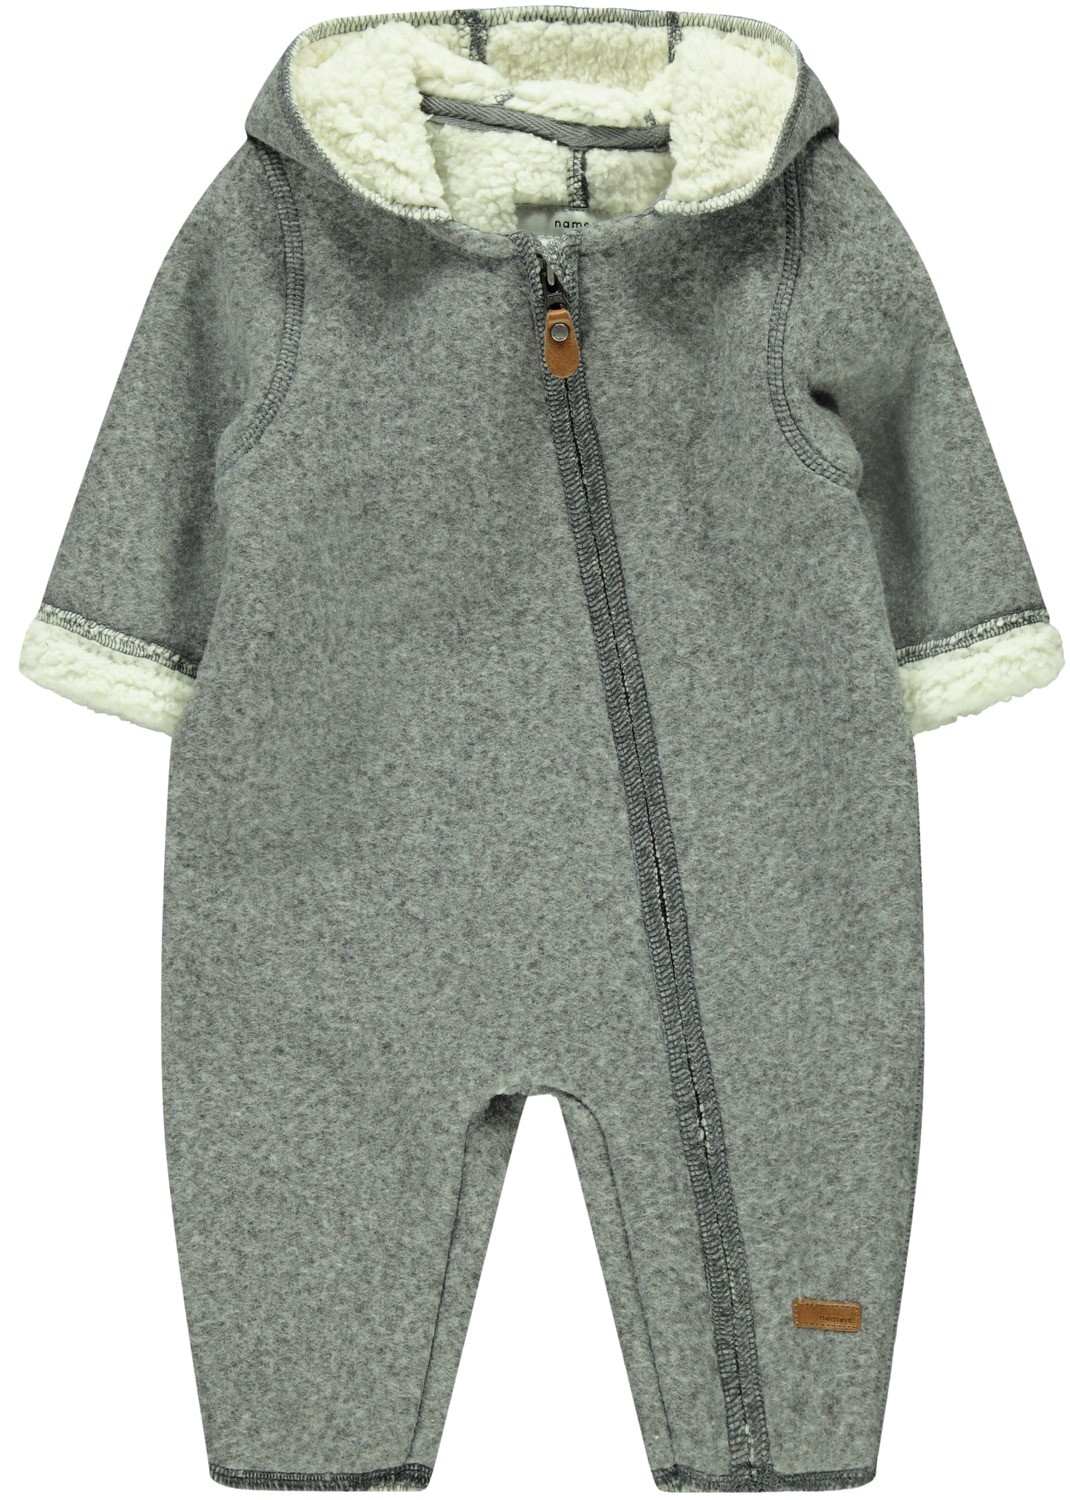 Utedress til baby – Name It grå utedress Miley – Mio Trend